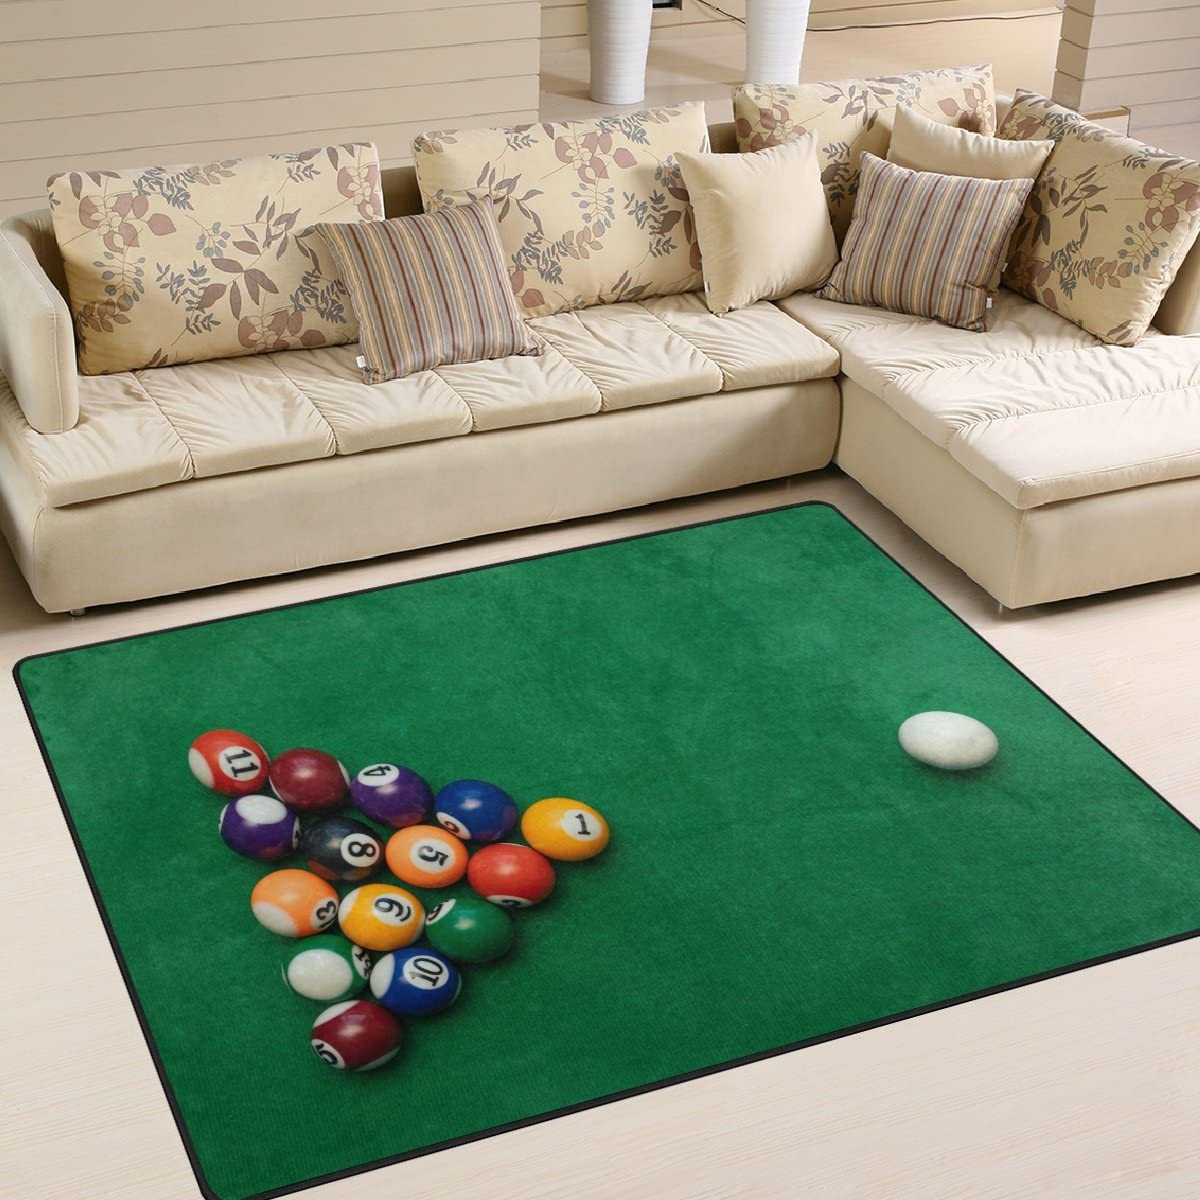 ALAZA American Billiards Pool on Green Table Area Rug Rugs for Living Room Bedroom 7 x 5